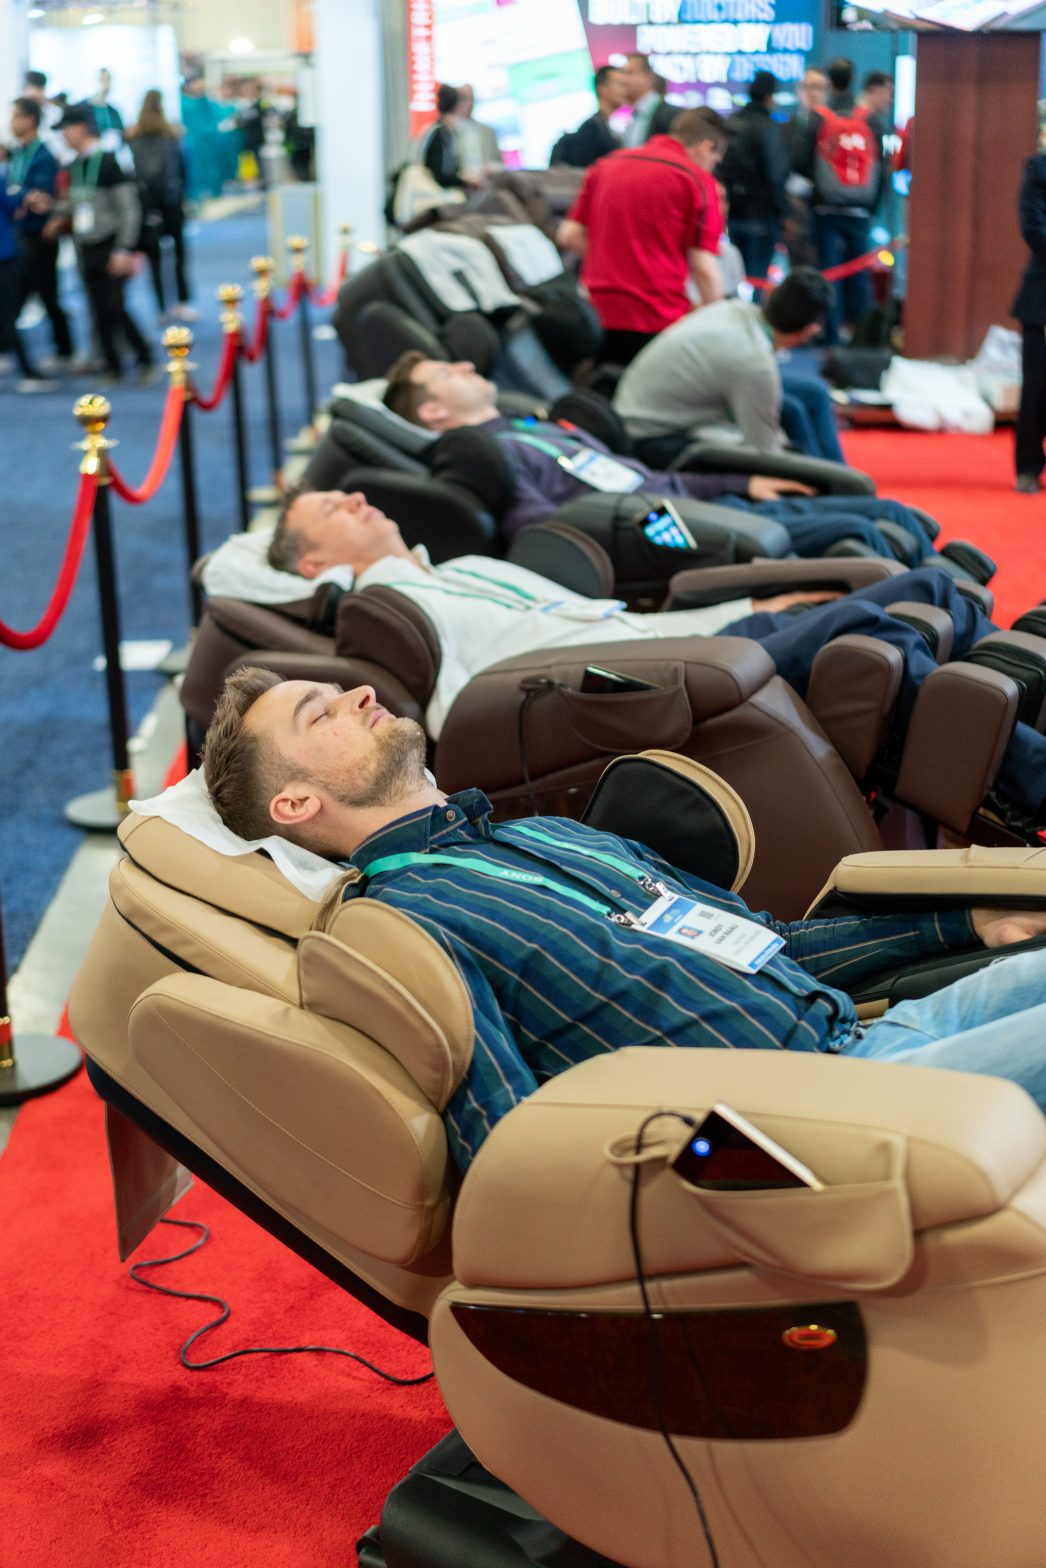 people sleeping in massage chairs